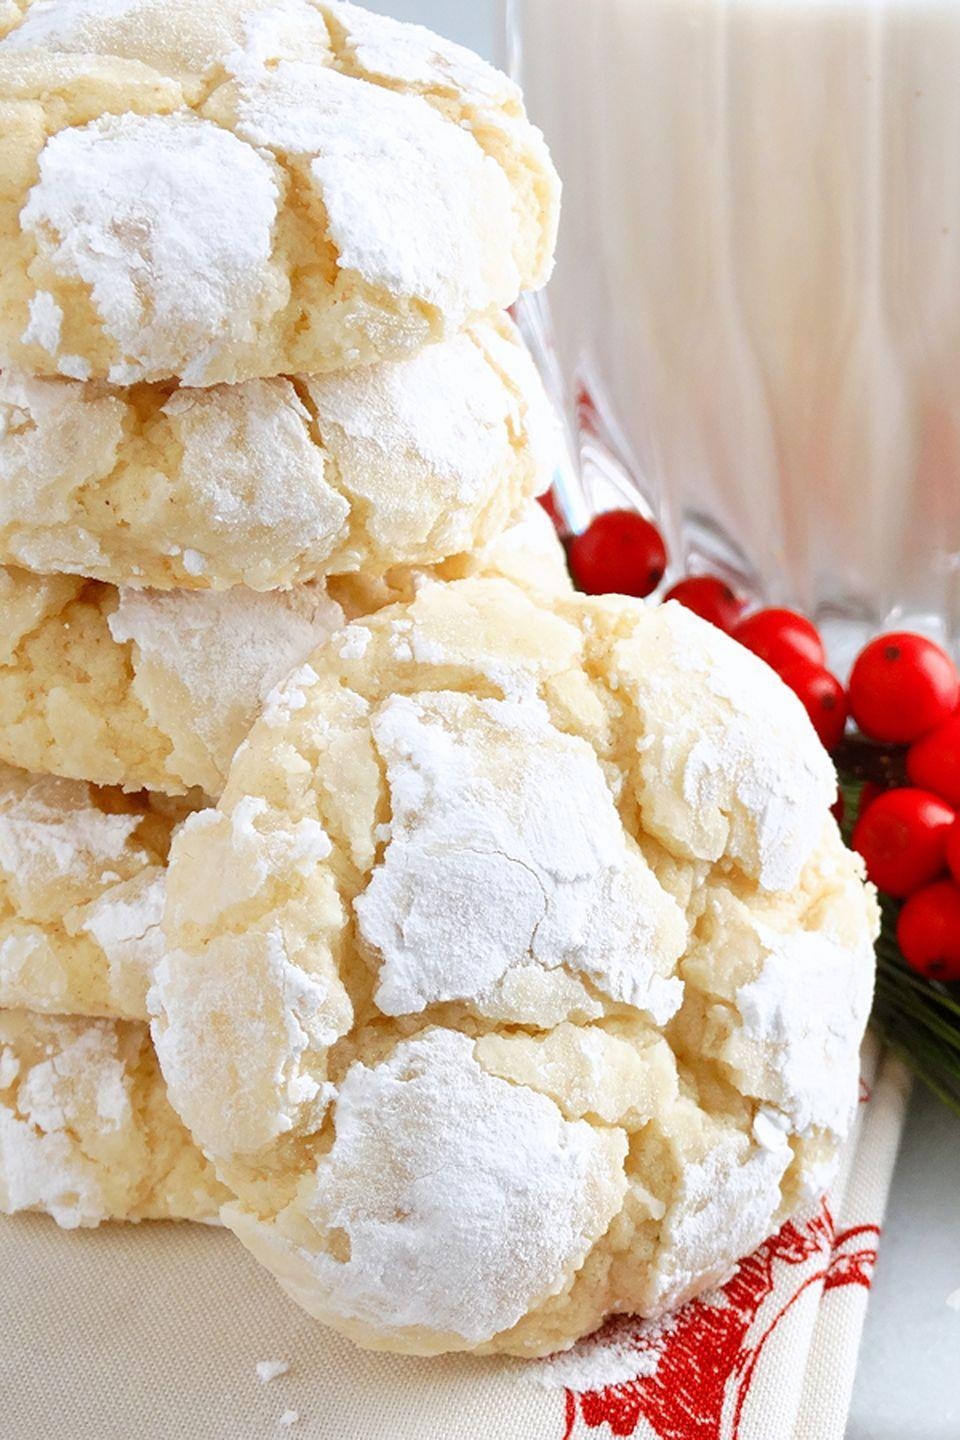 "<p>Serve these buttery bites at room temperature, or even slightly chilled from the refrigerator.</p><p><strong>Get the recipe at <a href=""http://wickedgoodkitchen.com/eggnog-gooey-butter-cookies-from-scratch/"" rel=""nofollow noopener"" target=""_blank"" data-ylk=""slk:Wicked Good Kitchen"" class=""link rapid-noclick-resp"">Wicked Good Kitchen</a>.</strong></p><p><a class=""link rapid-noclick-resp"" href=""https://www.amazon.com/OXO-Stainless-Flexible-Turner-Medium/dp/B00004OCL8?tag=syn-yahoo-20&ascsubtag=%5Bartid%7C10050.g.647%5Bsrc%7Cyahoo-us"" rel=""nofollow noopener"" target=""_blank"" data-ylk=""slk:SHOP SPATULAS"">SHOP SPATULAS</a></p>"